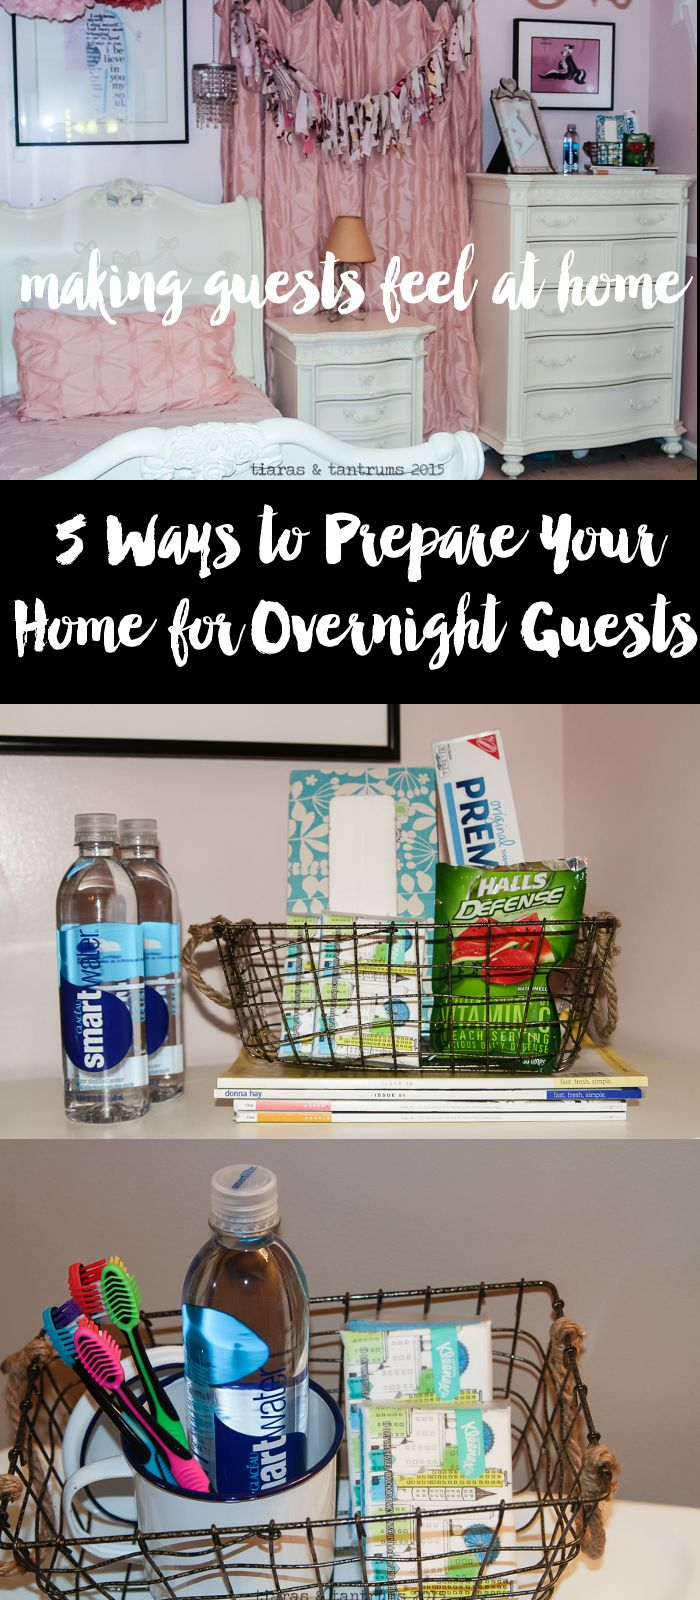 Are you having overnight guests this holiday season? Try my five ideas to get prepped and ready with all the seasonal essentials from #CVS for your guests. | http://www.tiarastantrums.com/blog/5-ways-to-prepare-for-overnight-guests #PreparedWithCVS #ad